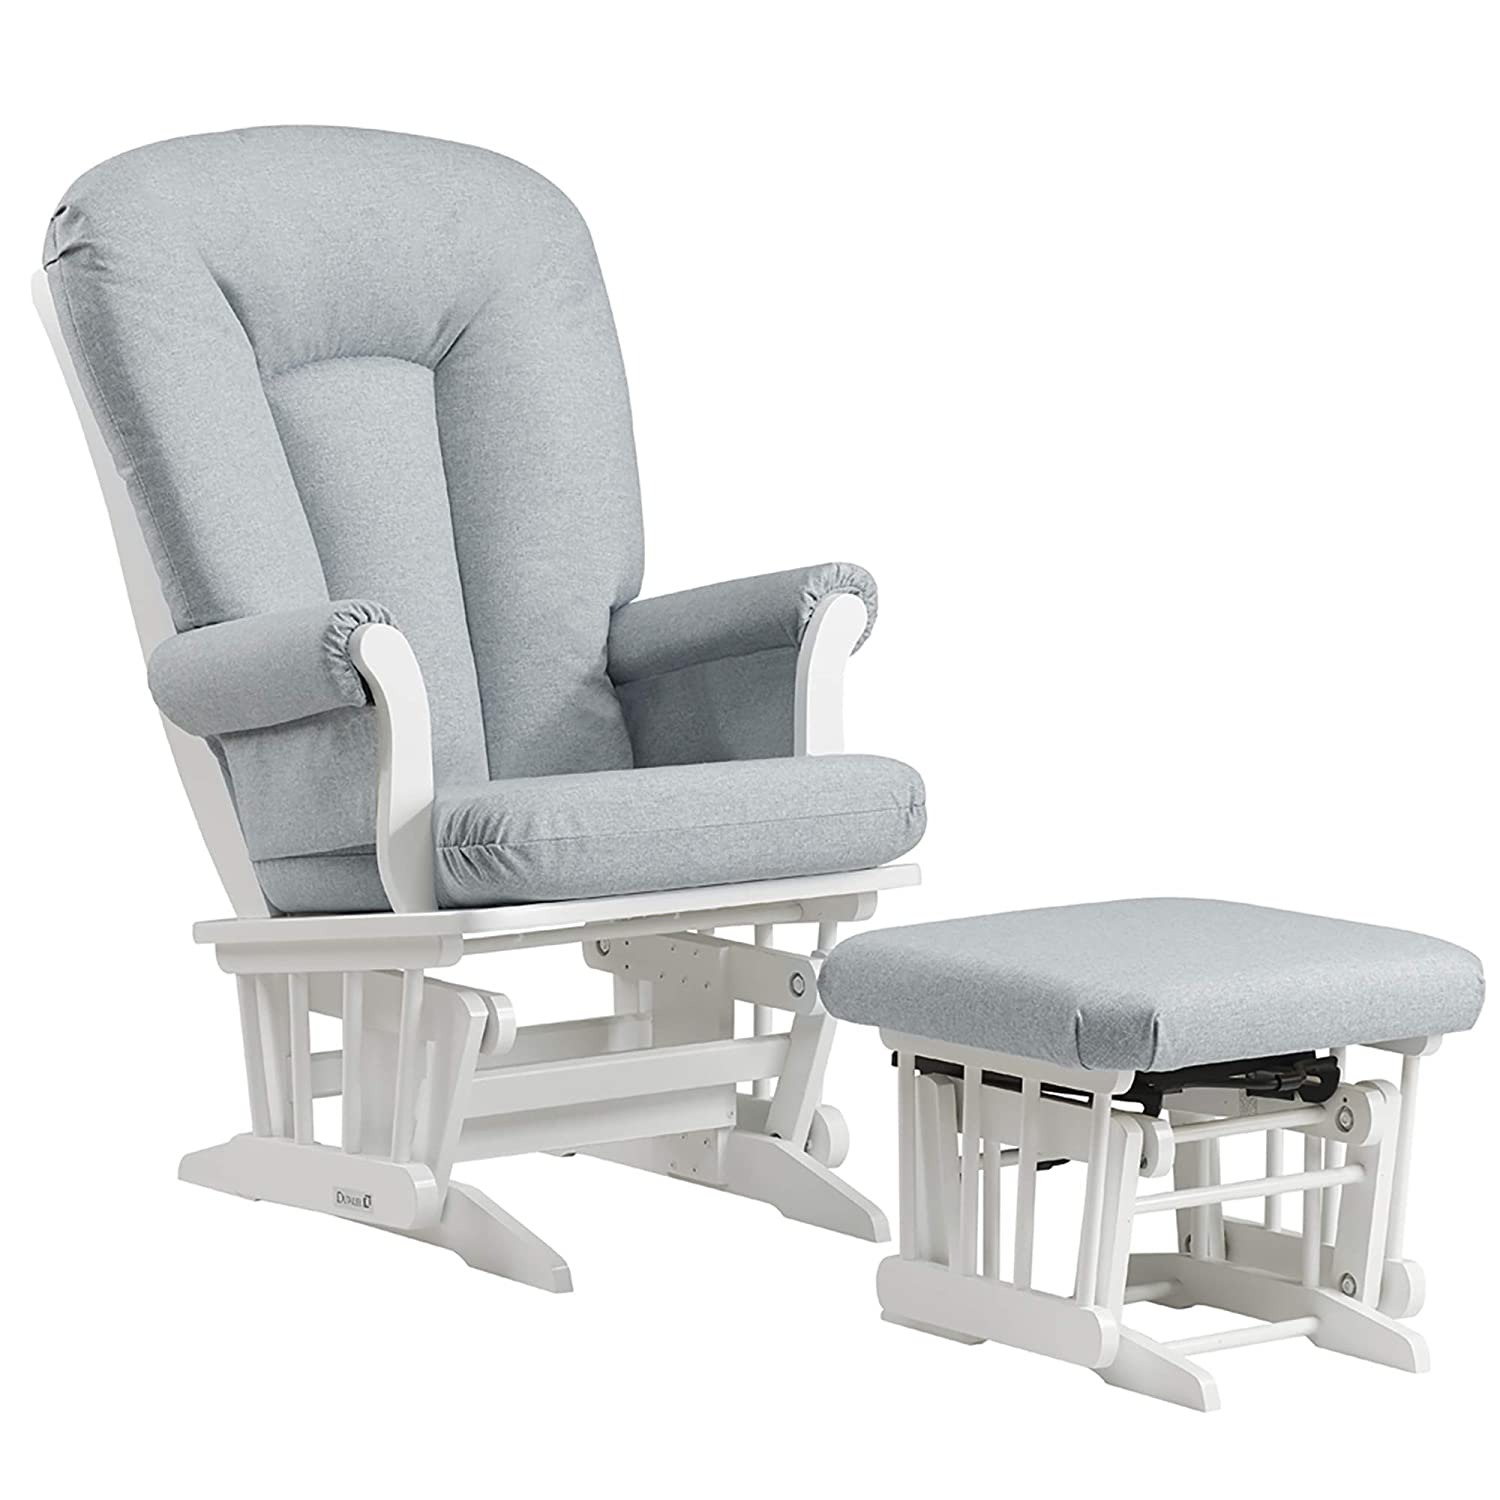 Challenge the lowest price of Japan ☆ Dutailier Alice 0364 Glider Nursing Chair with High quality new Ottoman